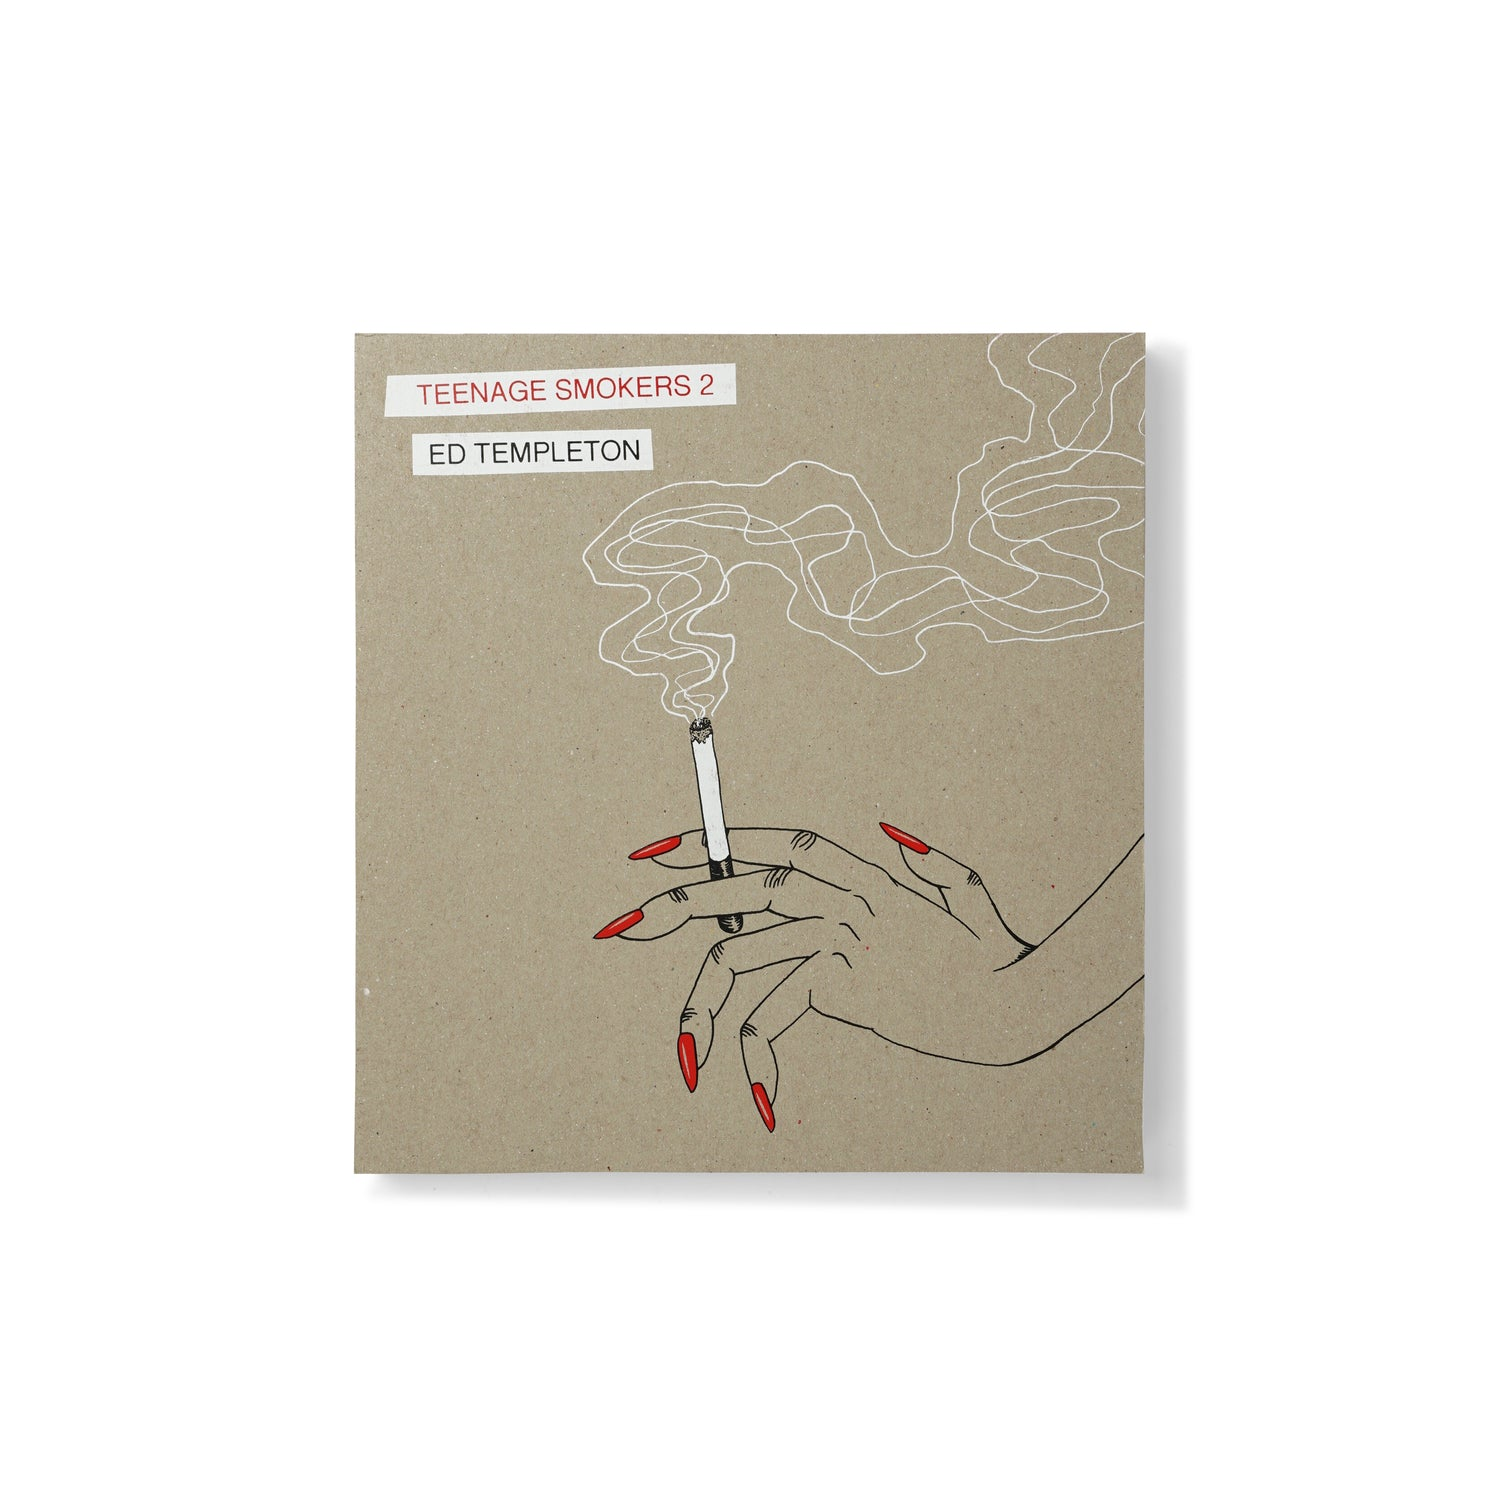 Teenage Smokers 2 - Ed Templeton